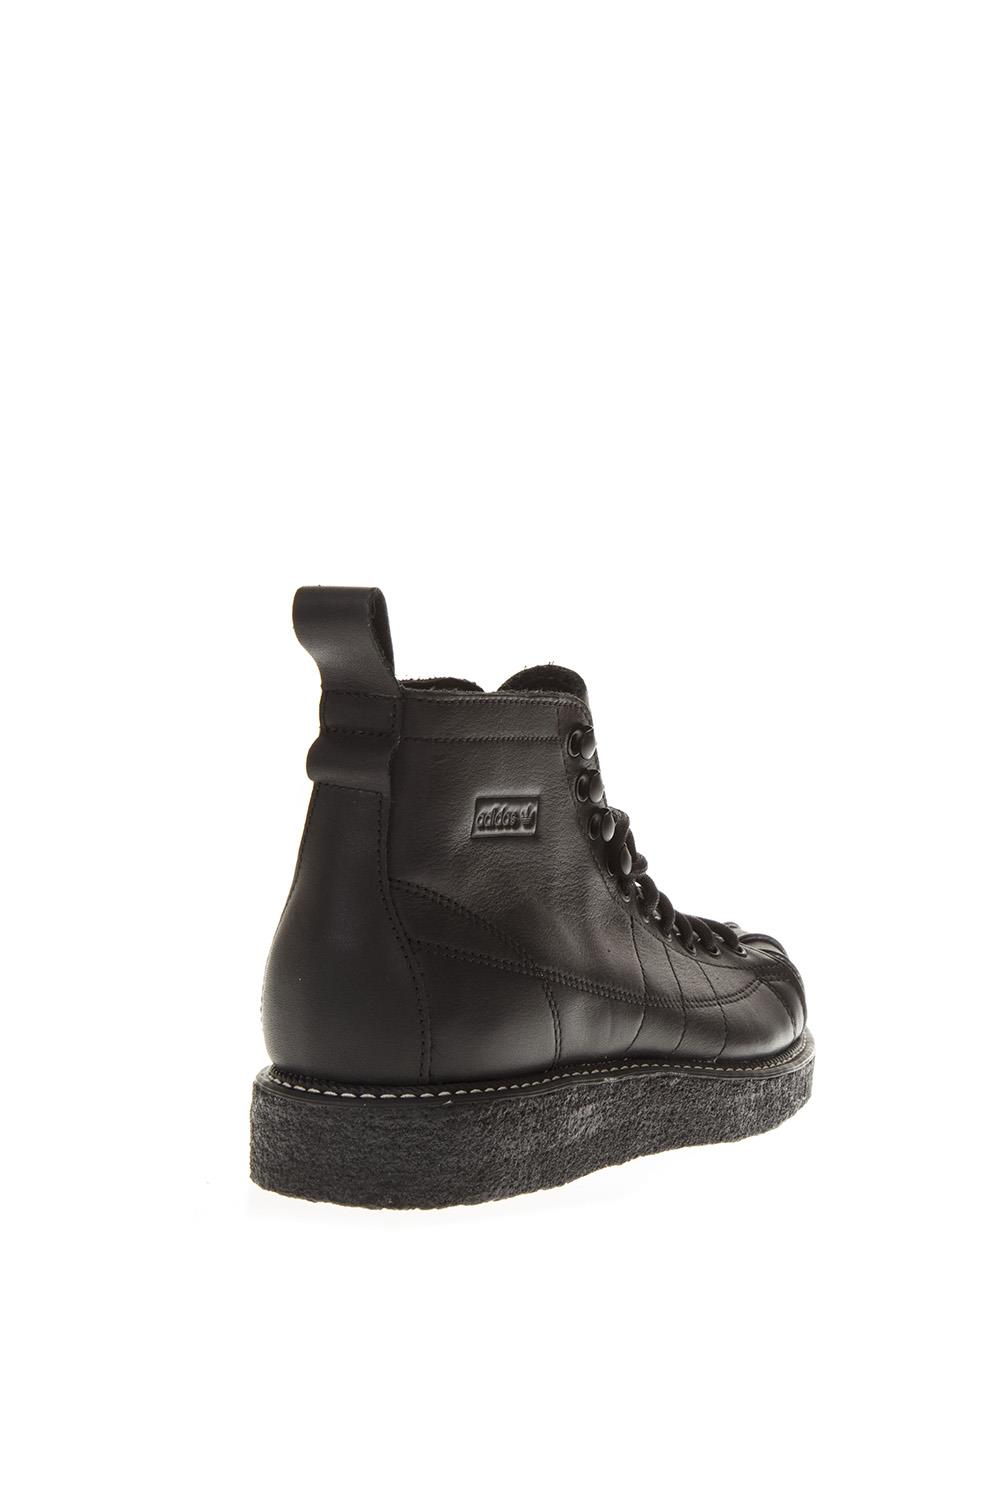 reputable site 8b6c4 a4f0e SST LUXE BLACK LòATHER SNEAKERS. ADIDAS ORIGINALS